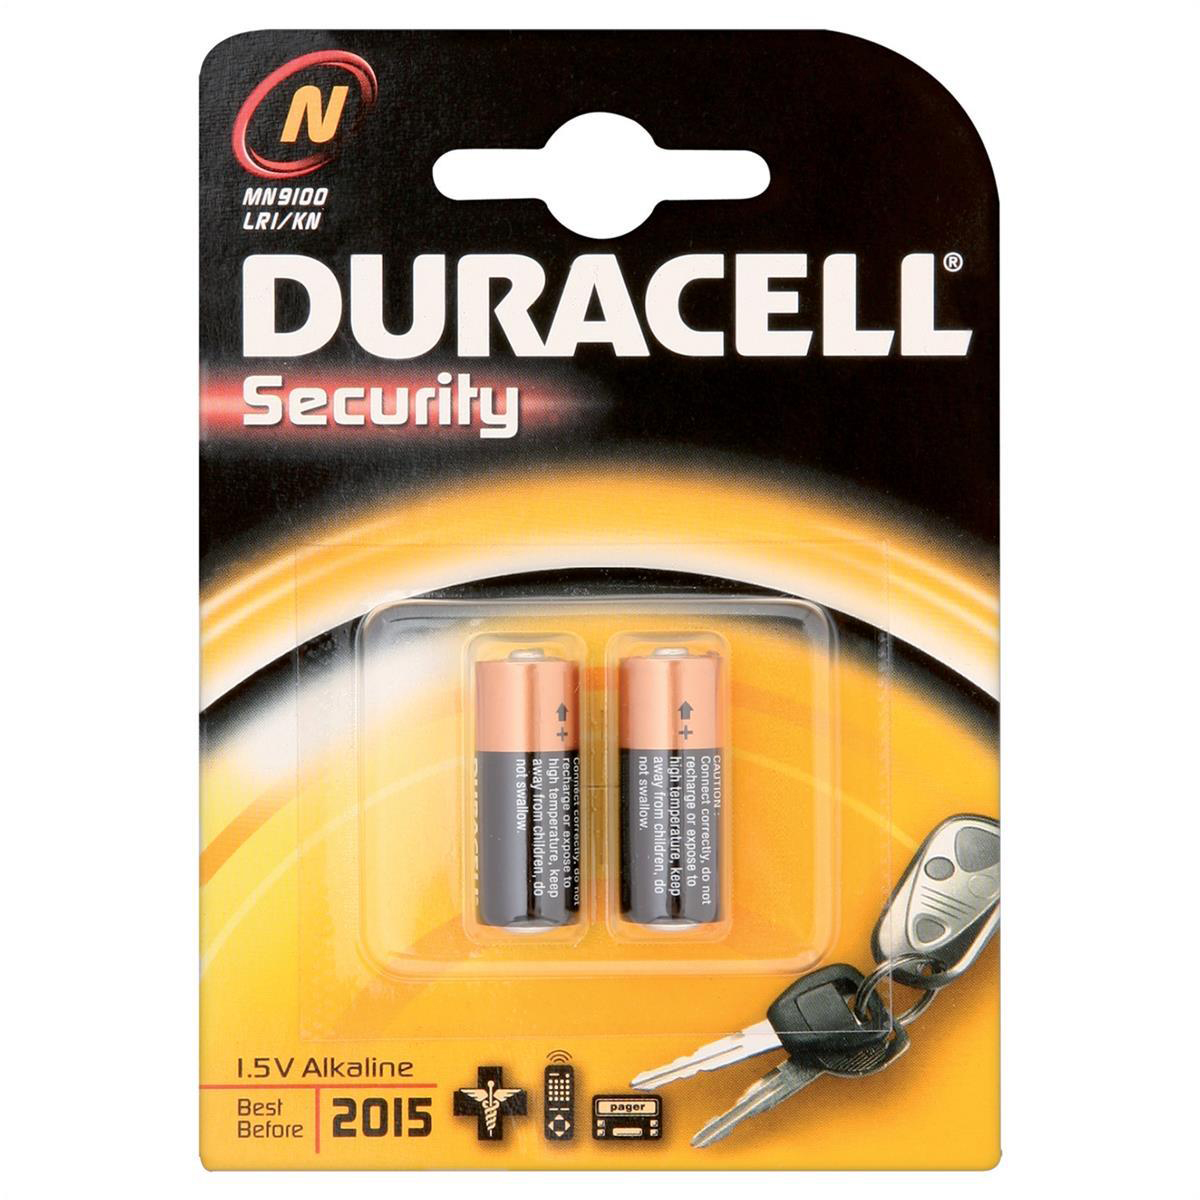 Duracell MN9100N Battery Alkaline for Camera Calculator or Pager 1.5V Ref 81223600 Pack 2